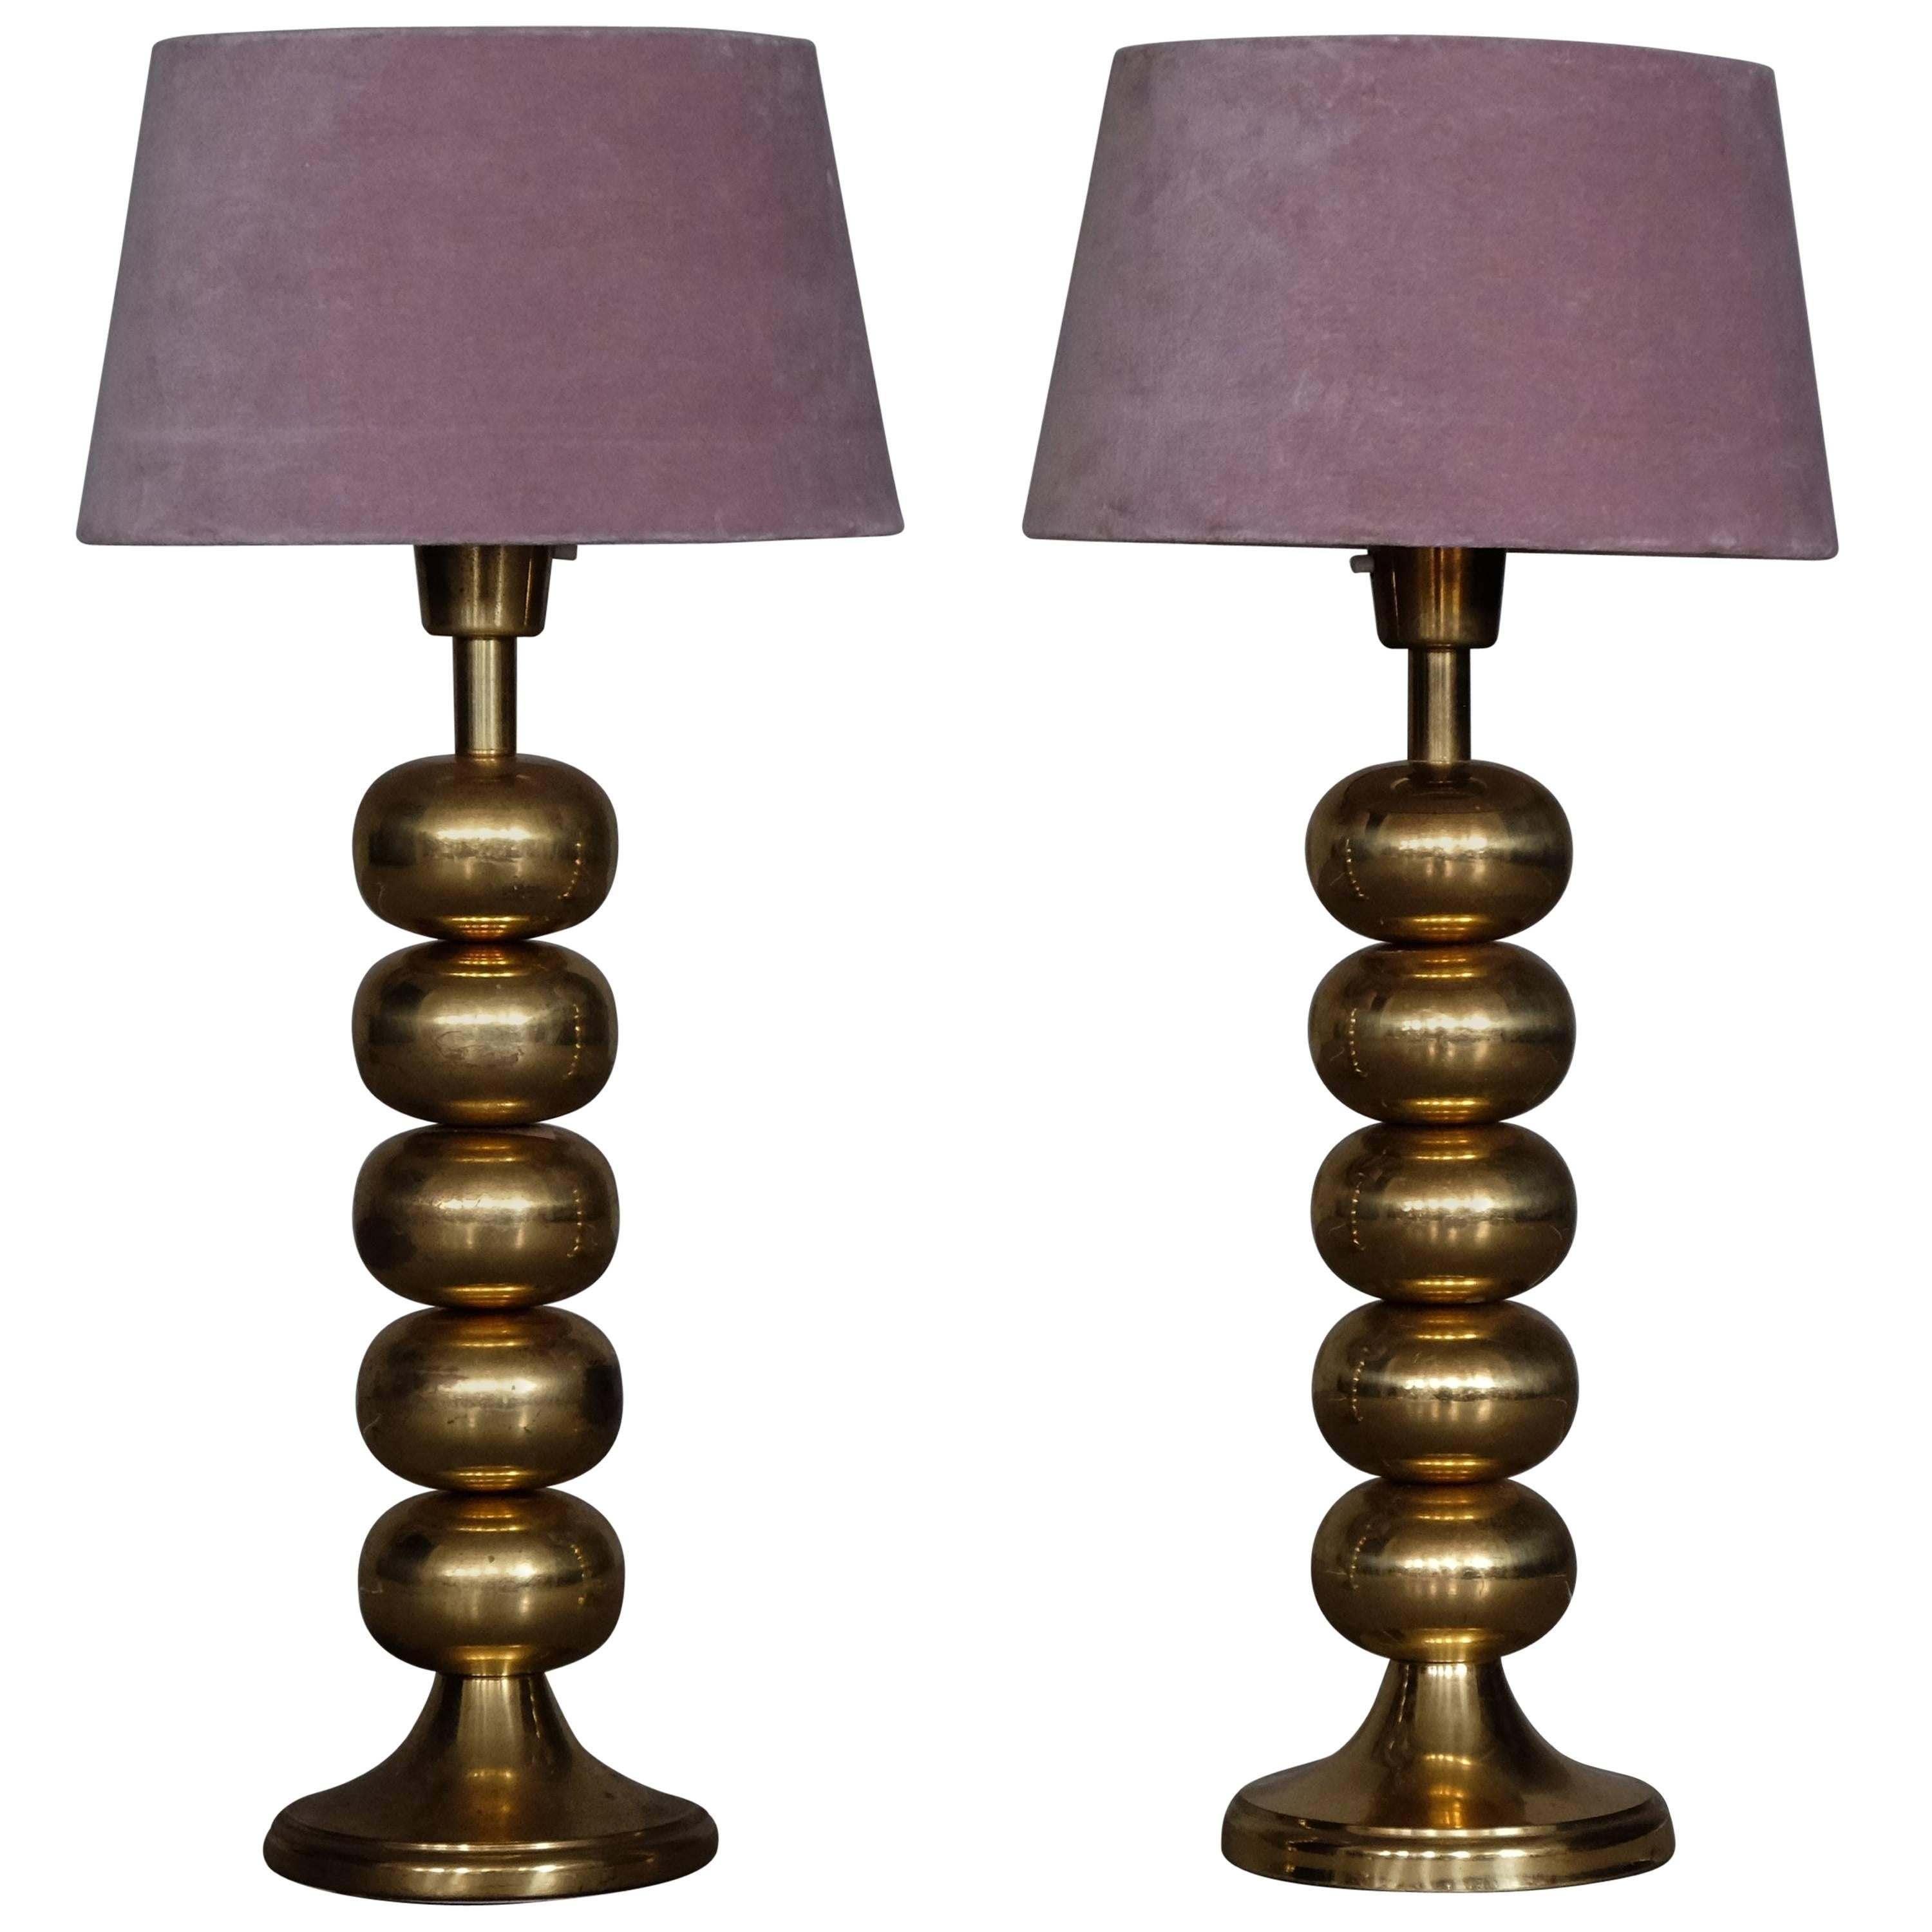 Pair of Brass Table Lamps by Aneta, Sweden, 1960s